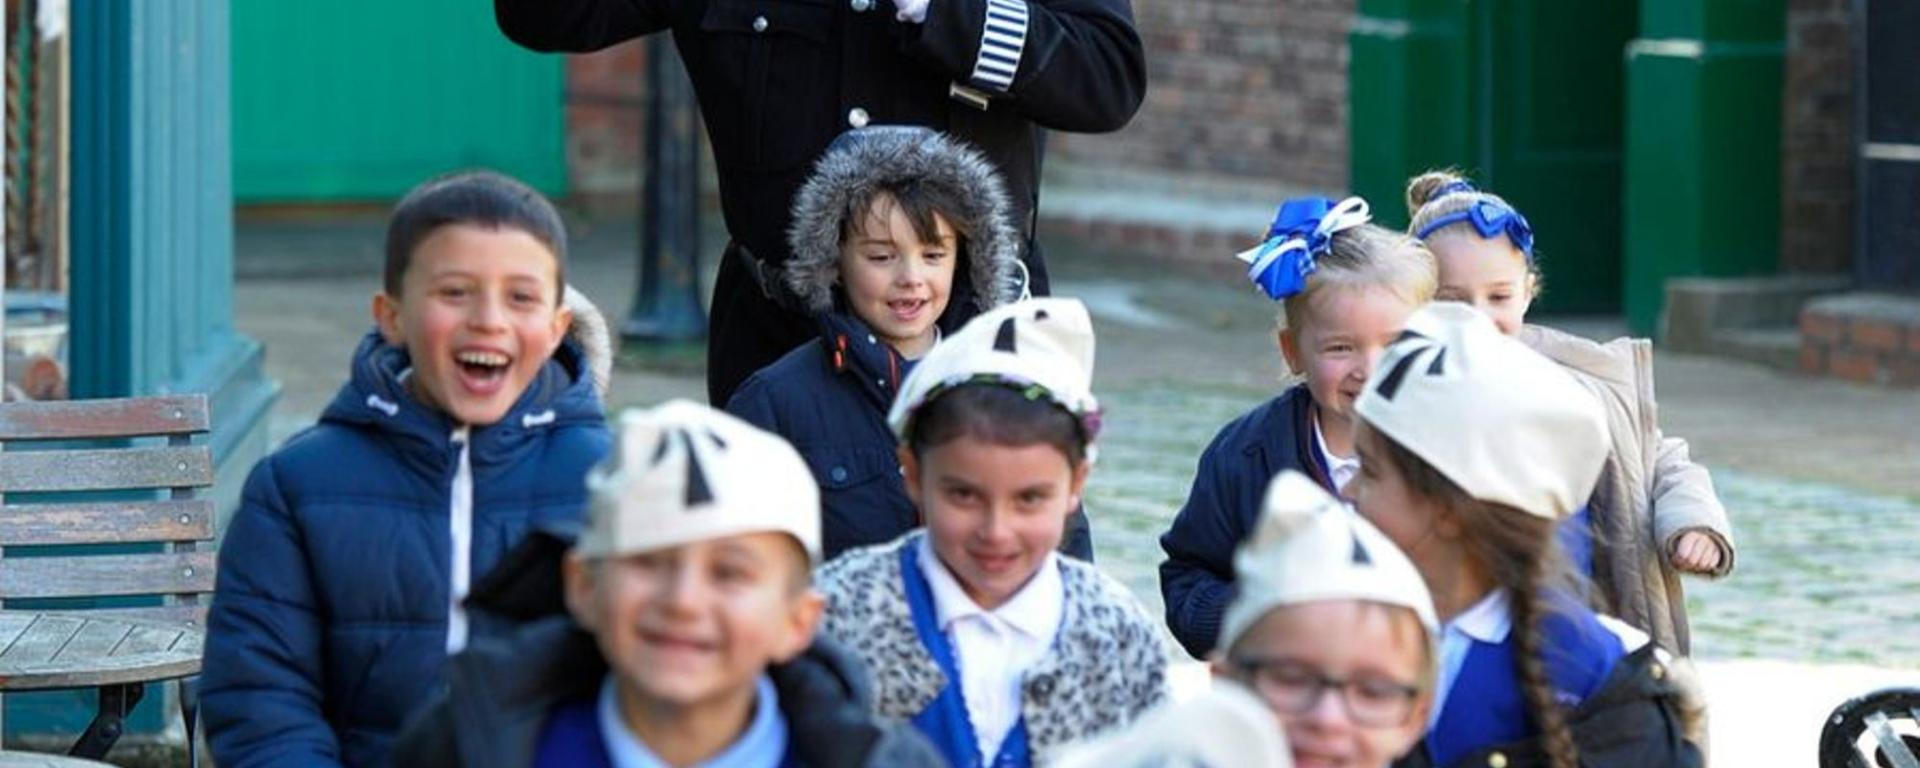 School Children Getting Chased By A Victorian Policeman On The Victorian Street